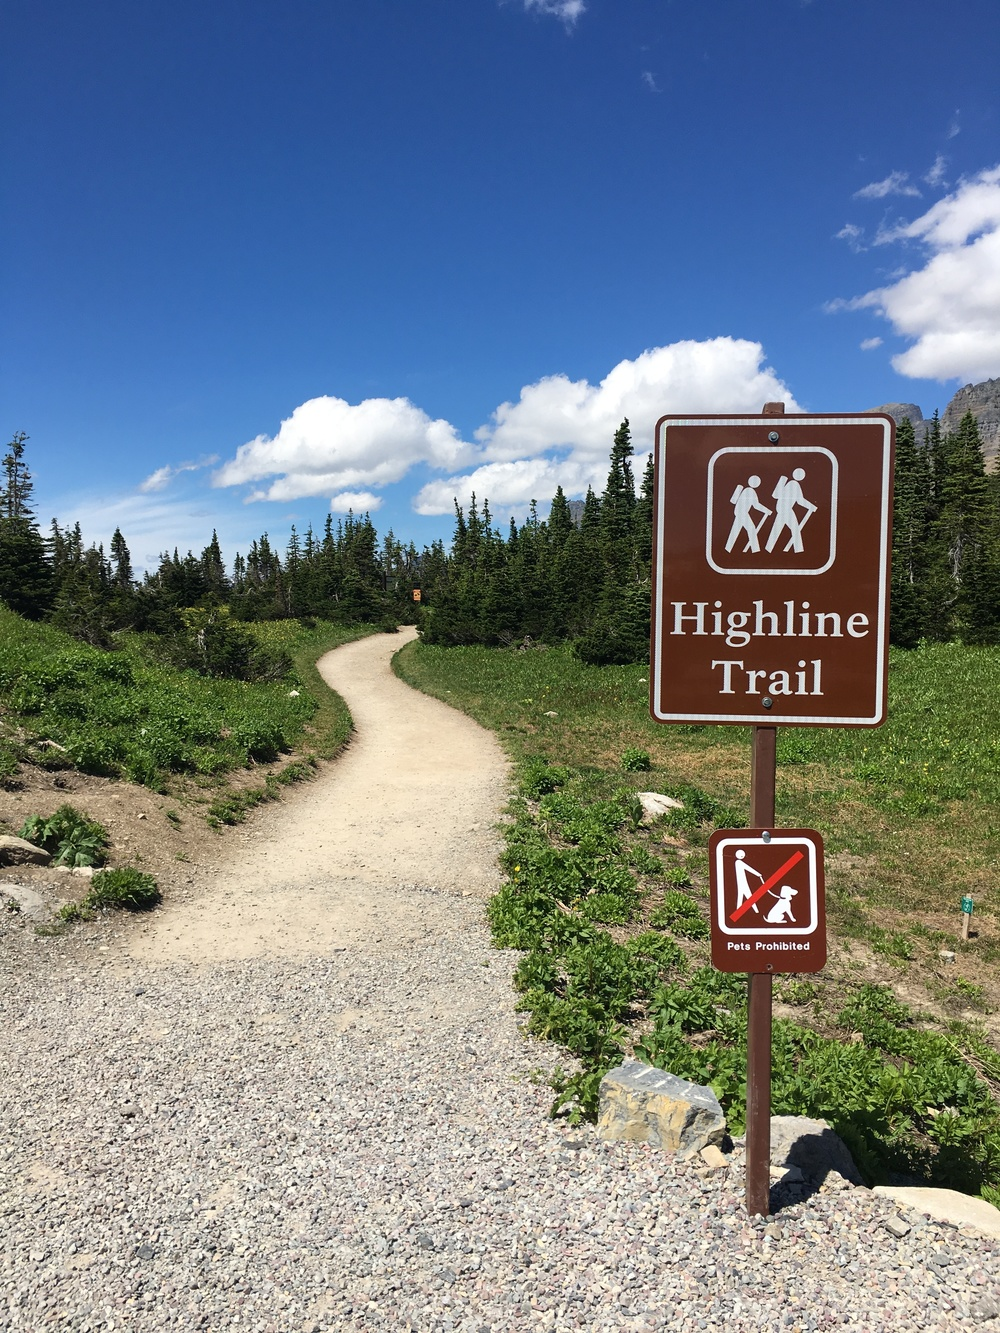 Highline trail trailhead